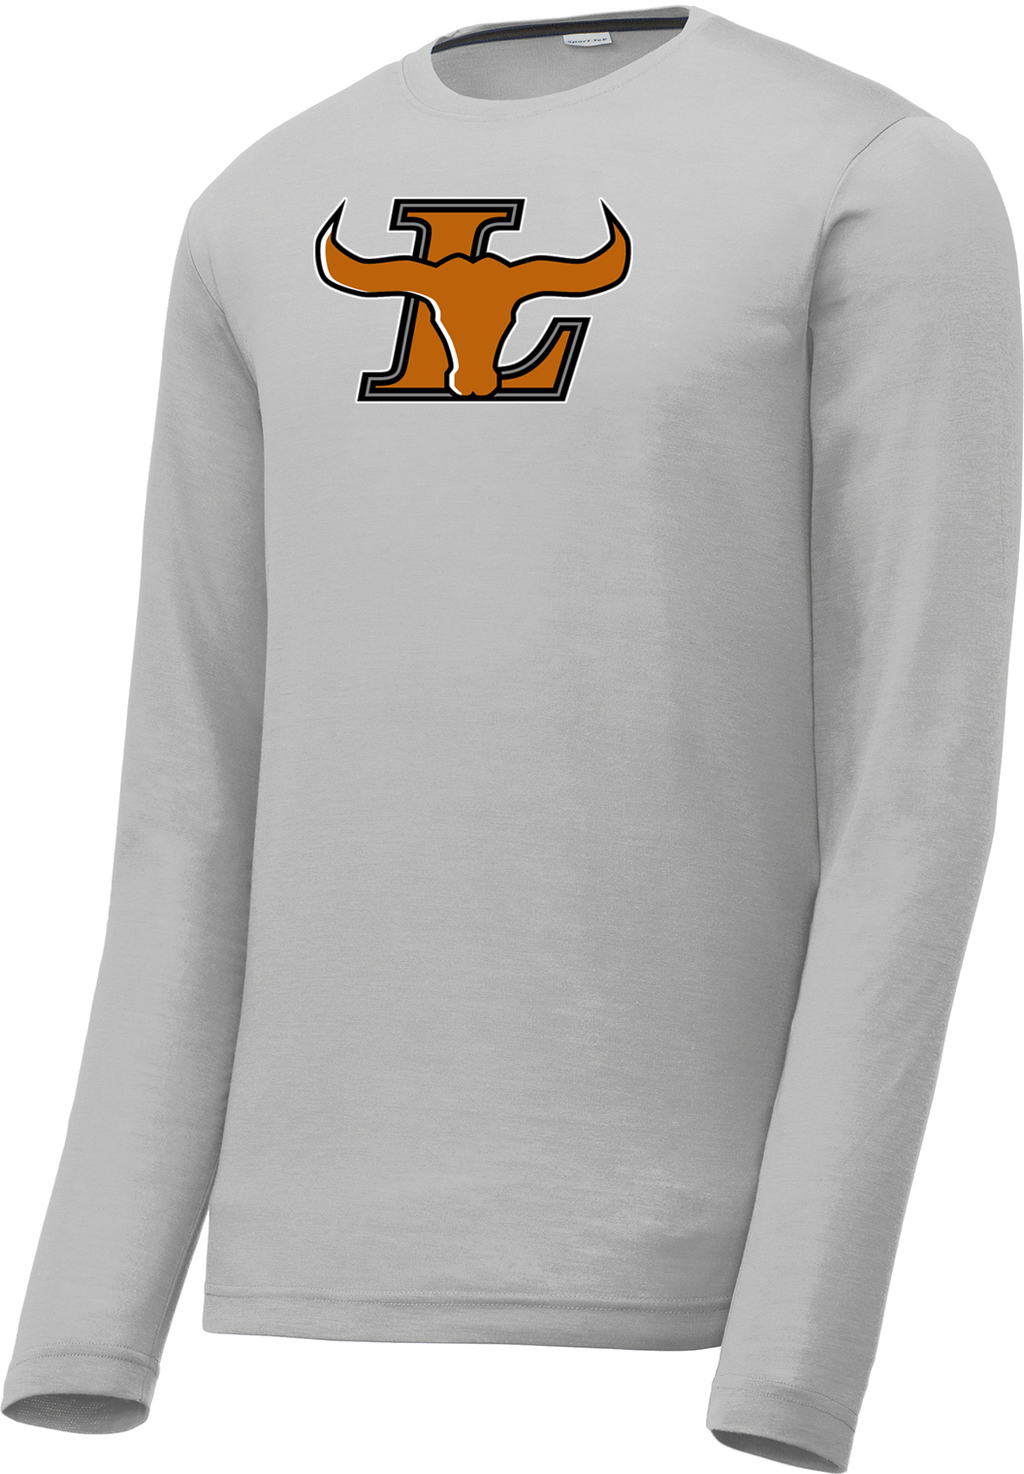 Lanier Baseball Long Sleeve CottonTouch Performance Shirt